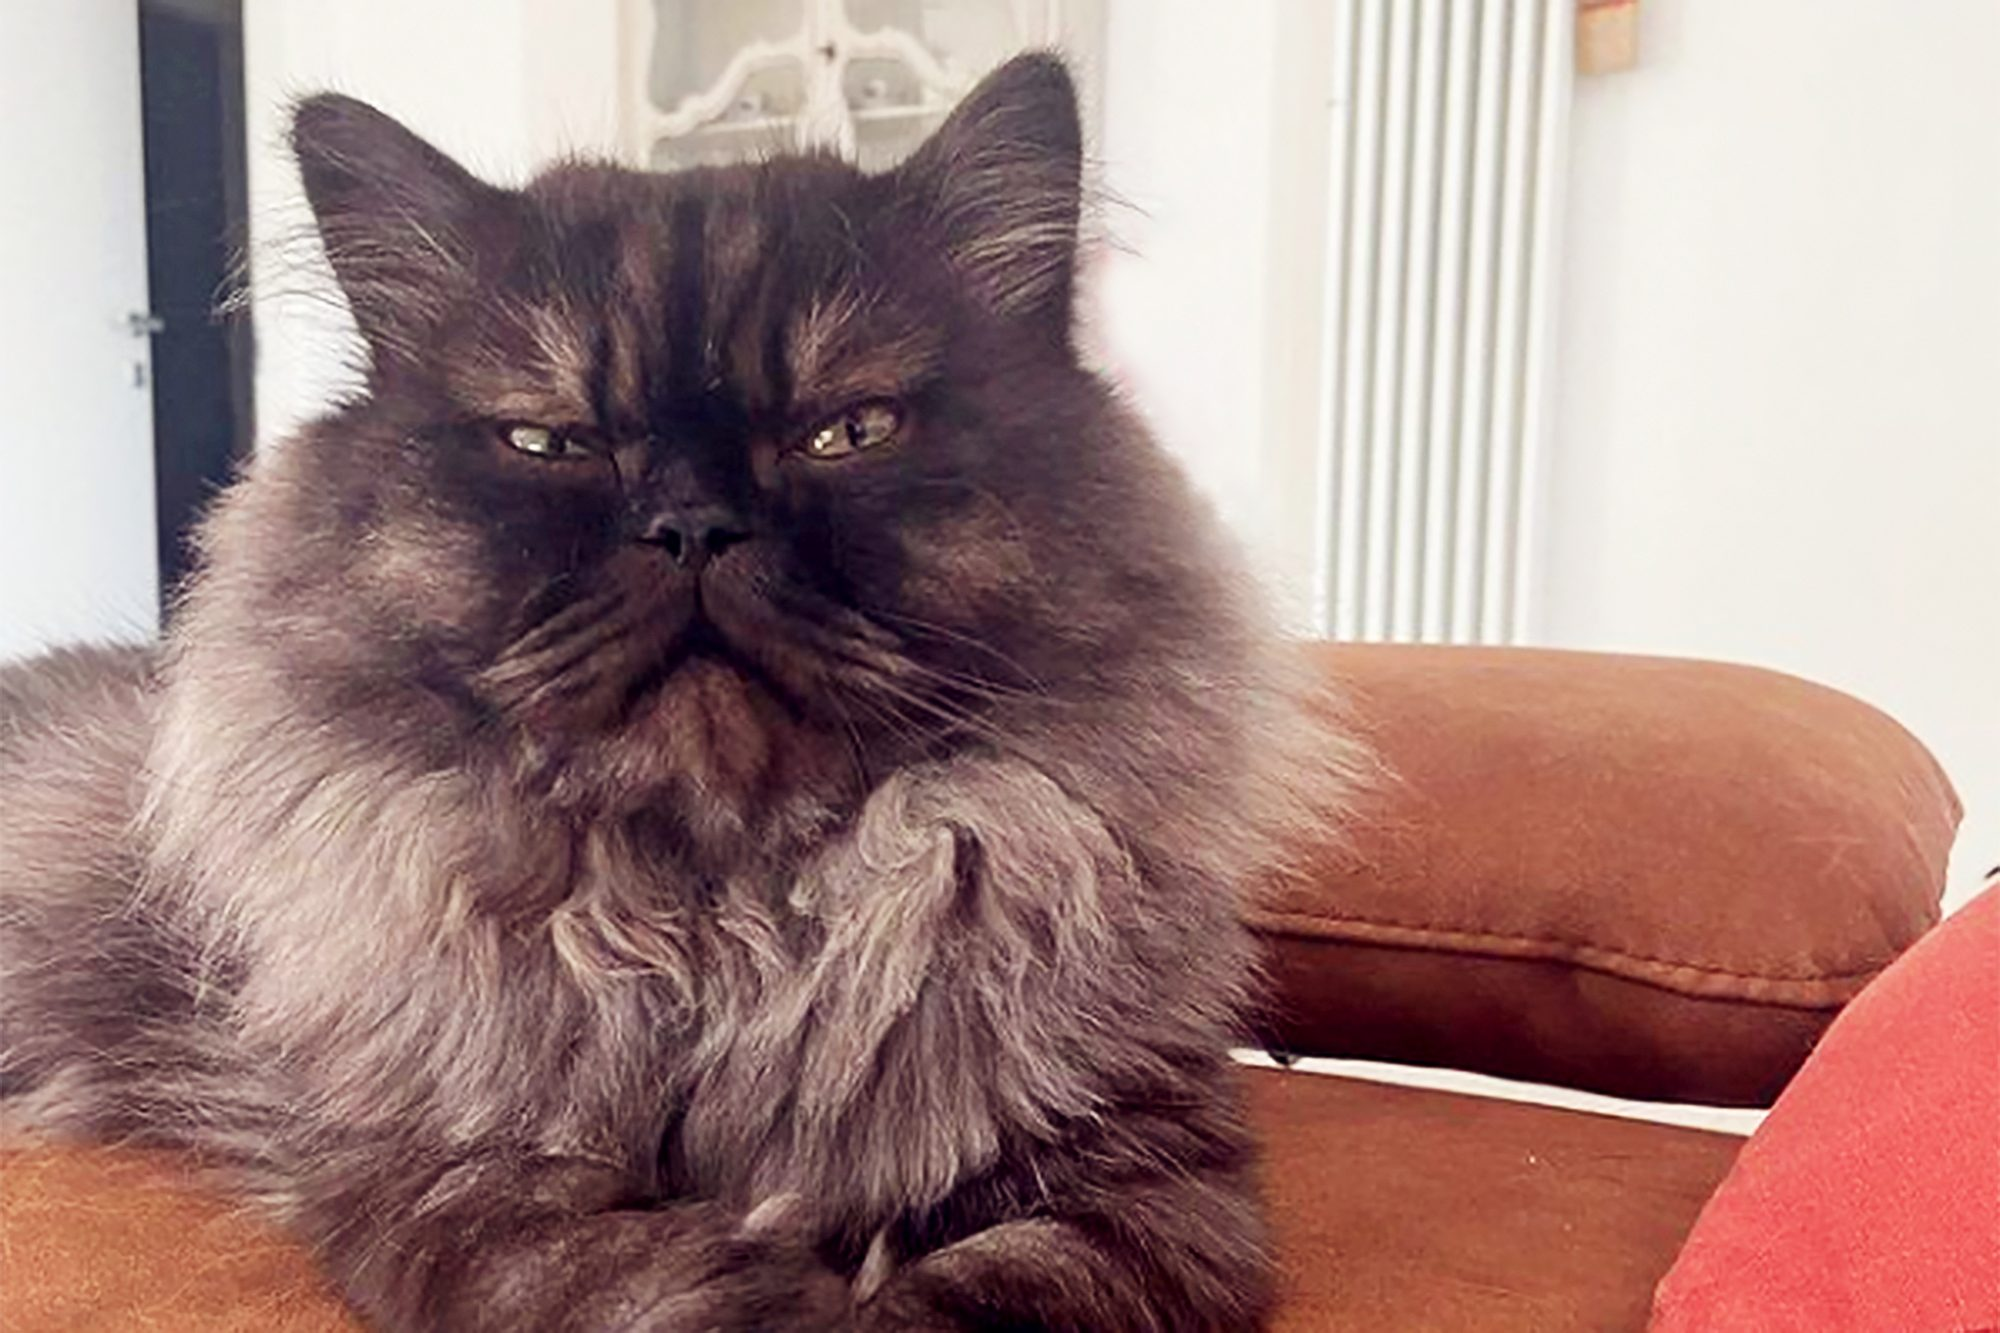 furry cat with a grumpy expression